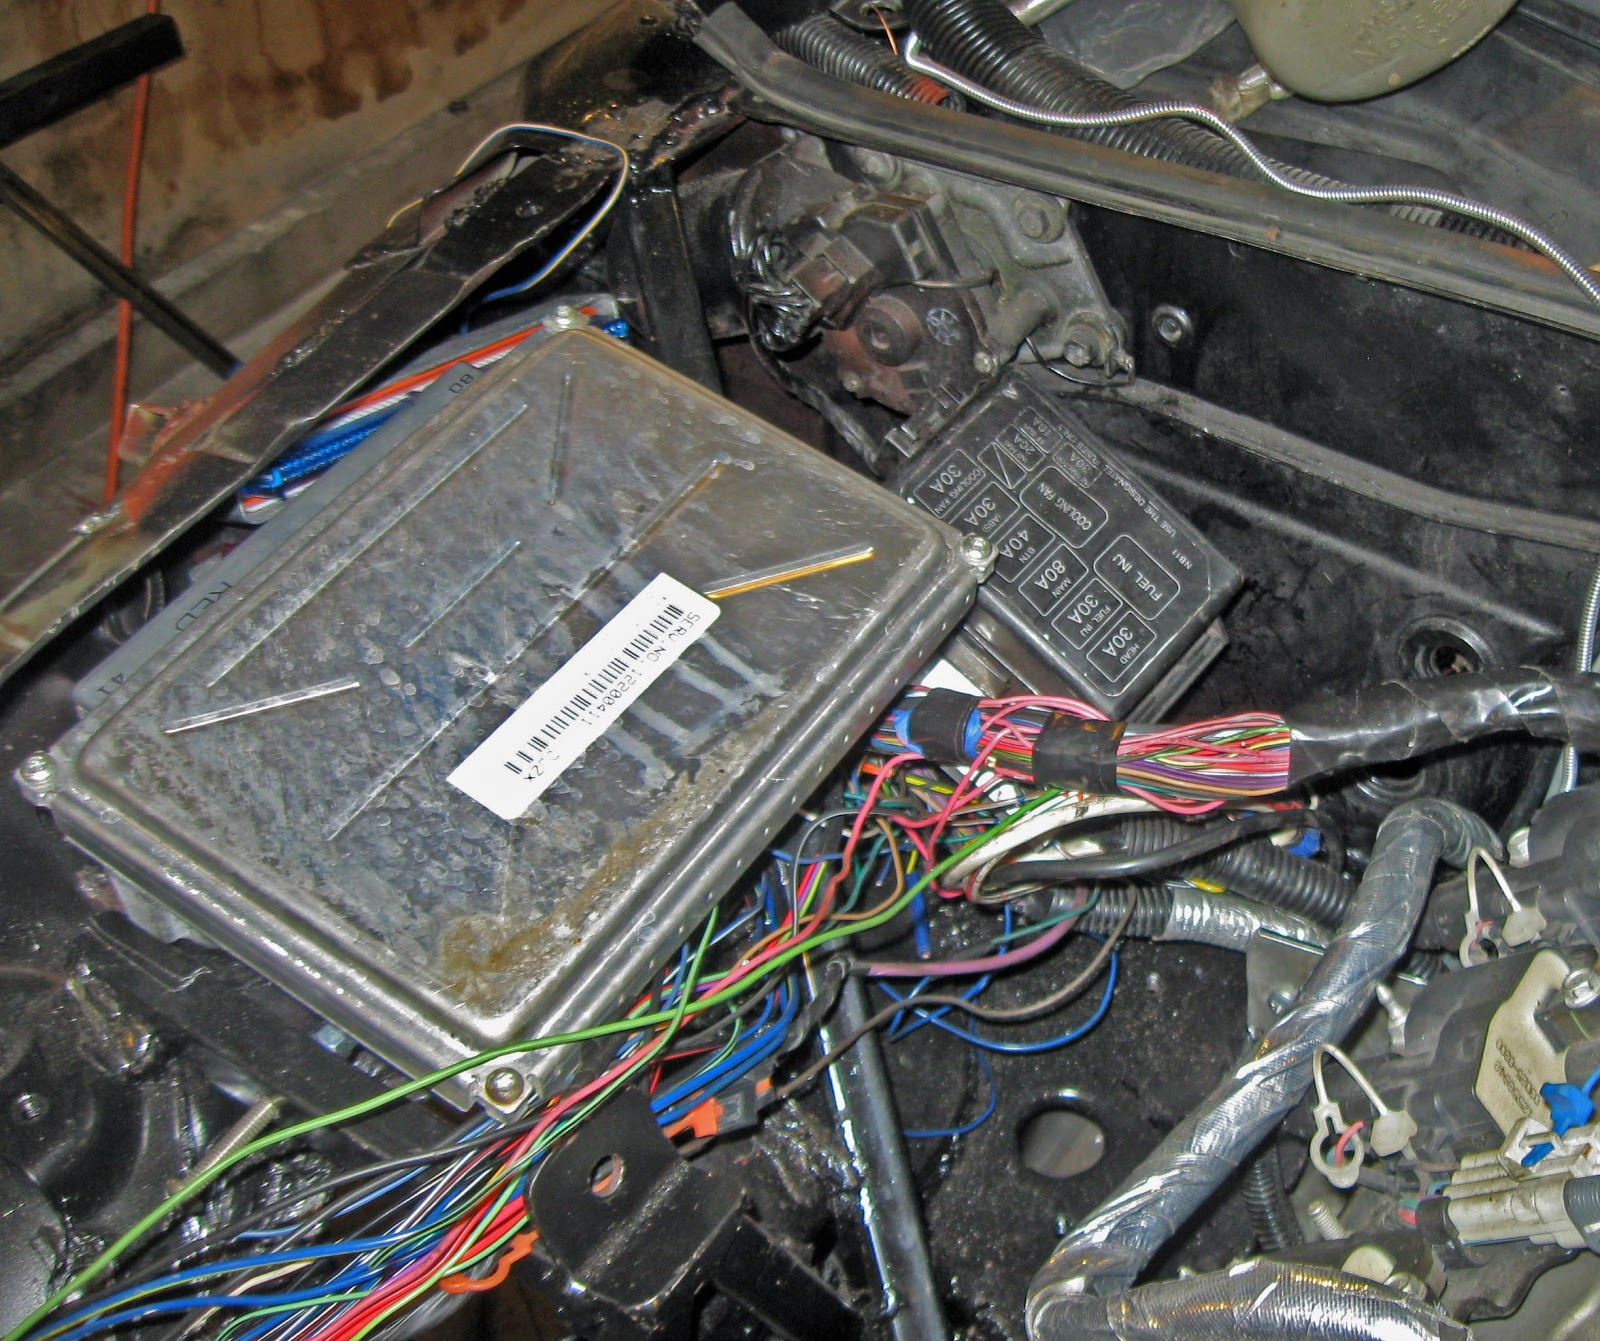 Jim And Jenna Build Diary Miata Ls1 Conversion Odds Ends Oops Box For Computer Wiring Harness I Tried To Plug In The Connectors On Transmission But Wires Would Not Reach Had Laying Top Of Engine